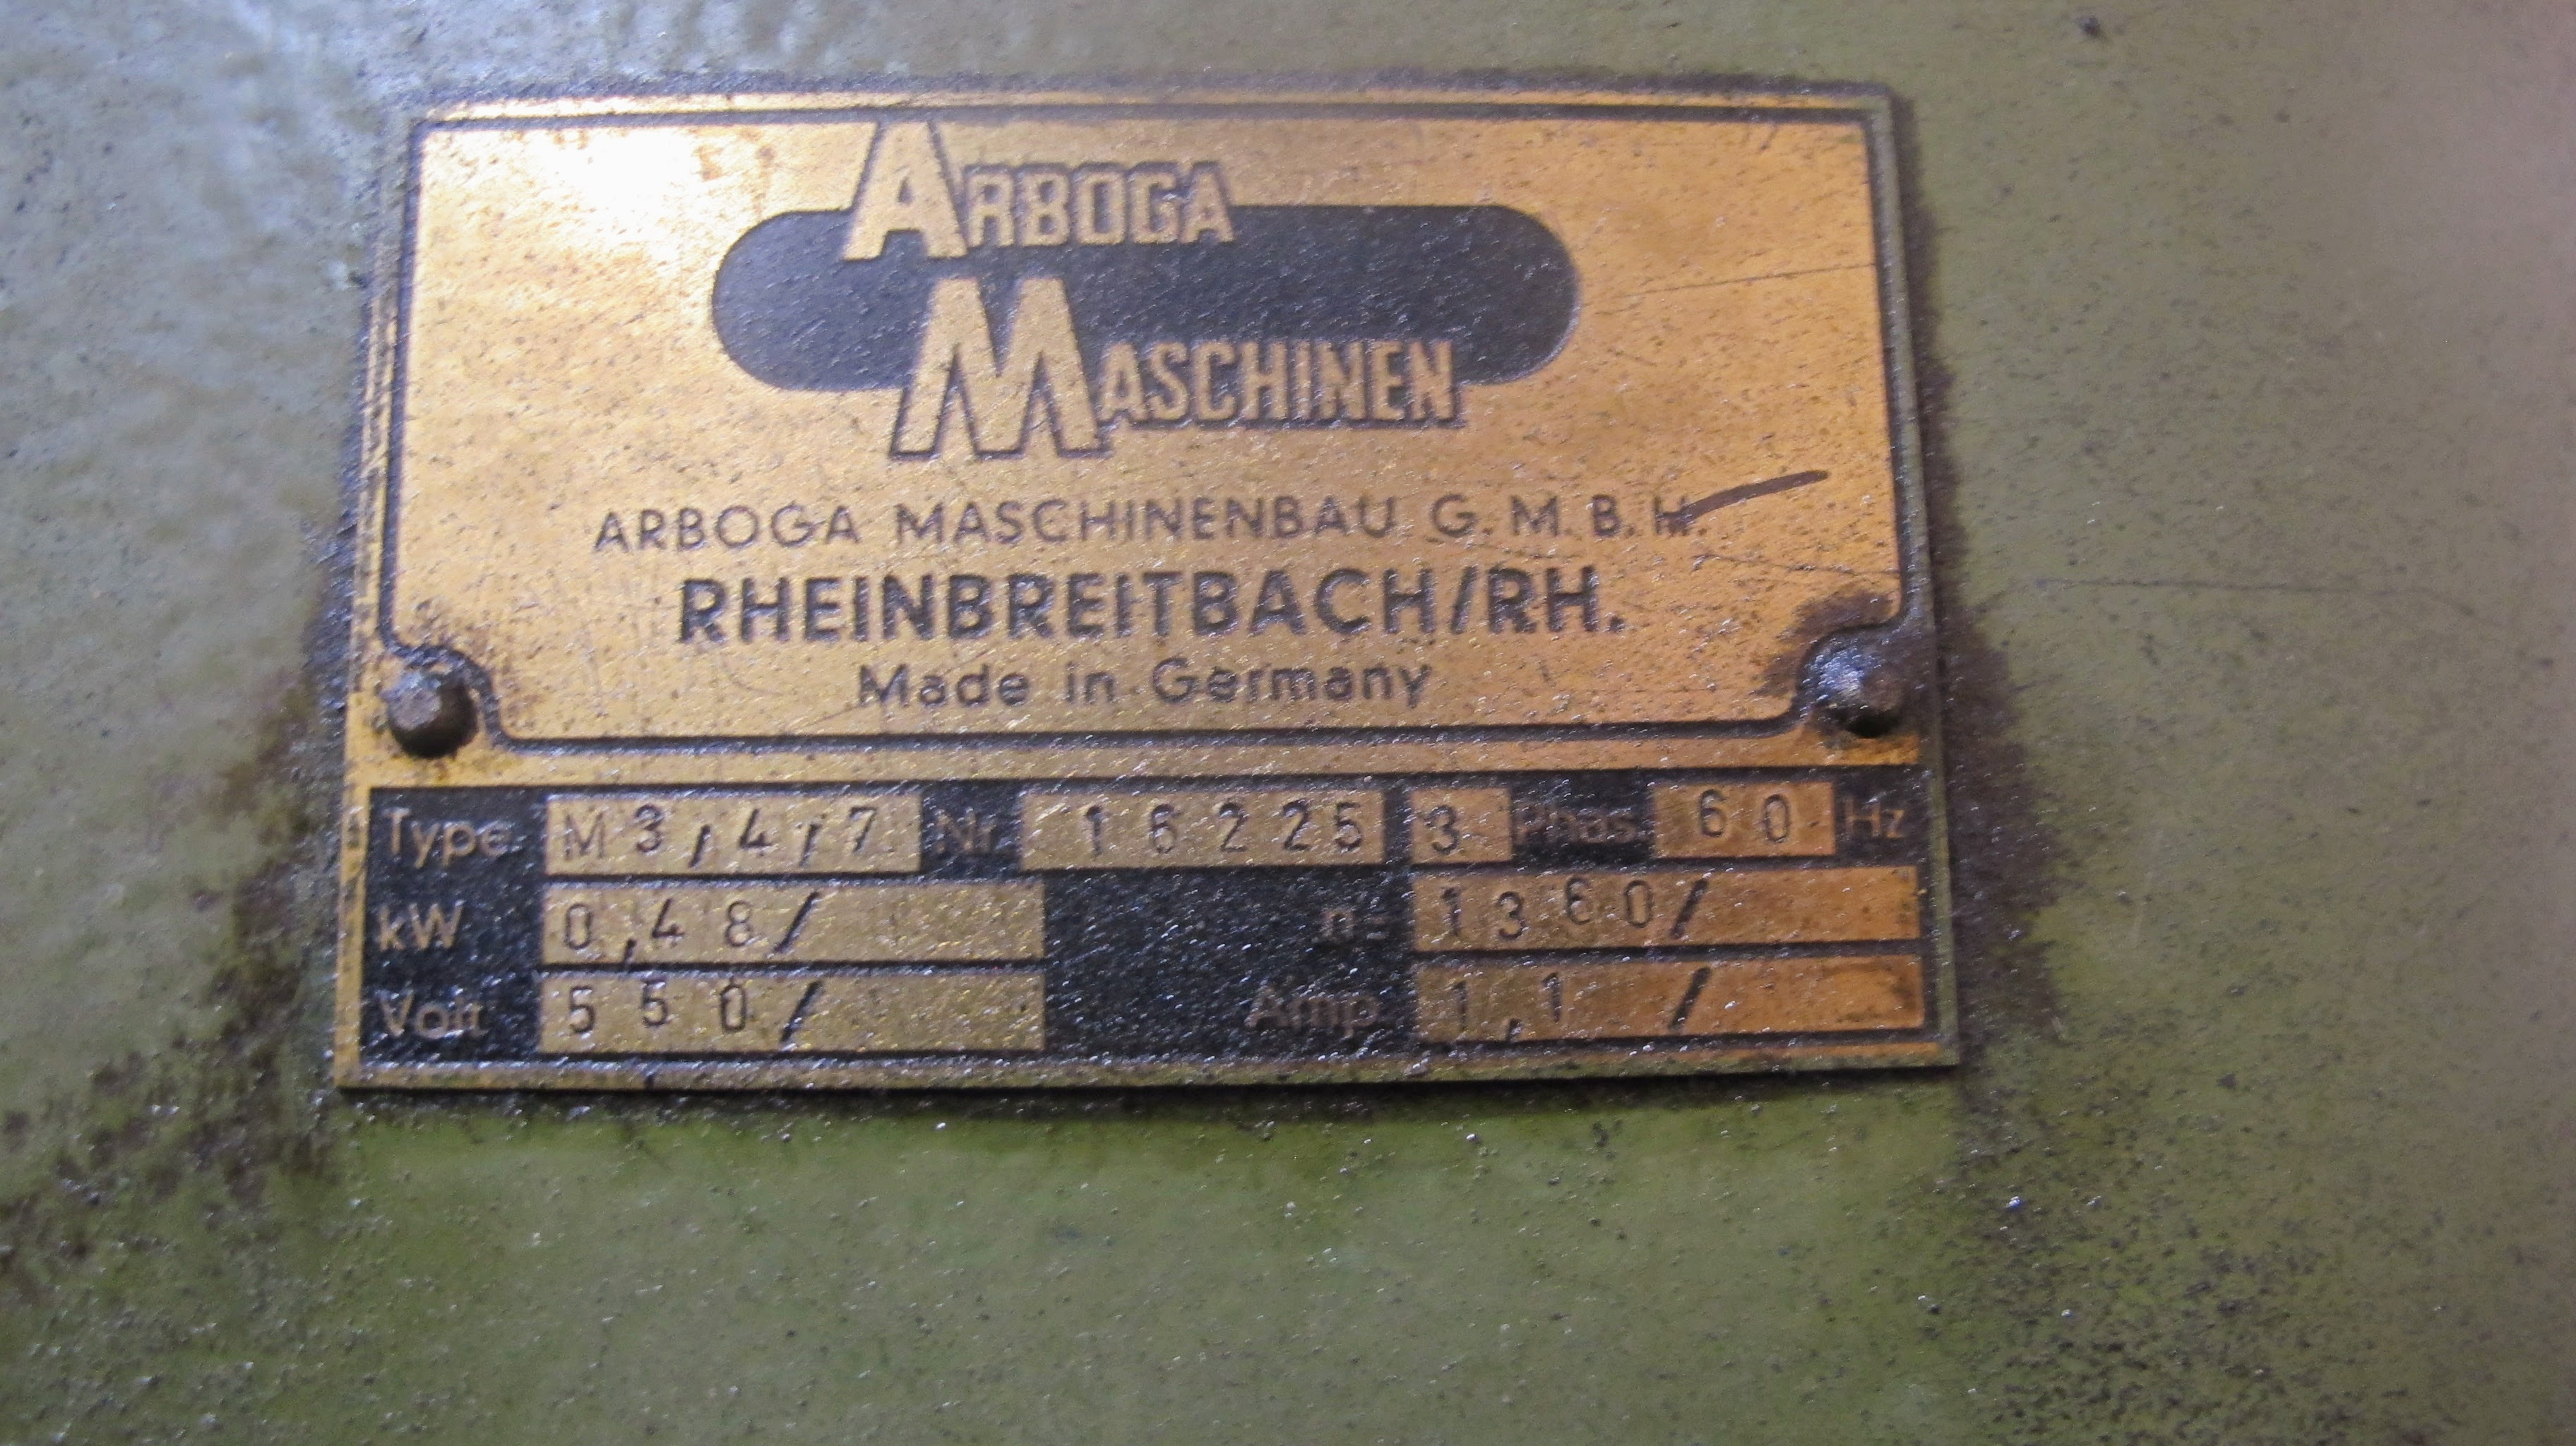 """ARBOGA MASCHINEN M3/4/7 DRILL PRESS, 1 1/4"""" BORES, 60V, 28"""" X 20"""" TABLE, 63 TO 800 RPM, S/N 16225 - Image 5 of 5"""